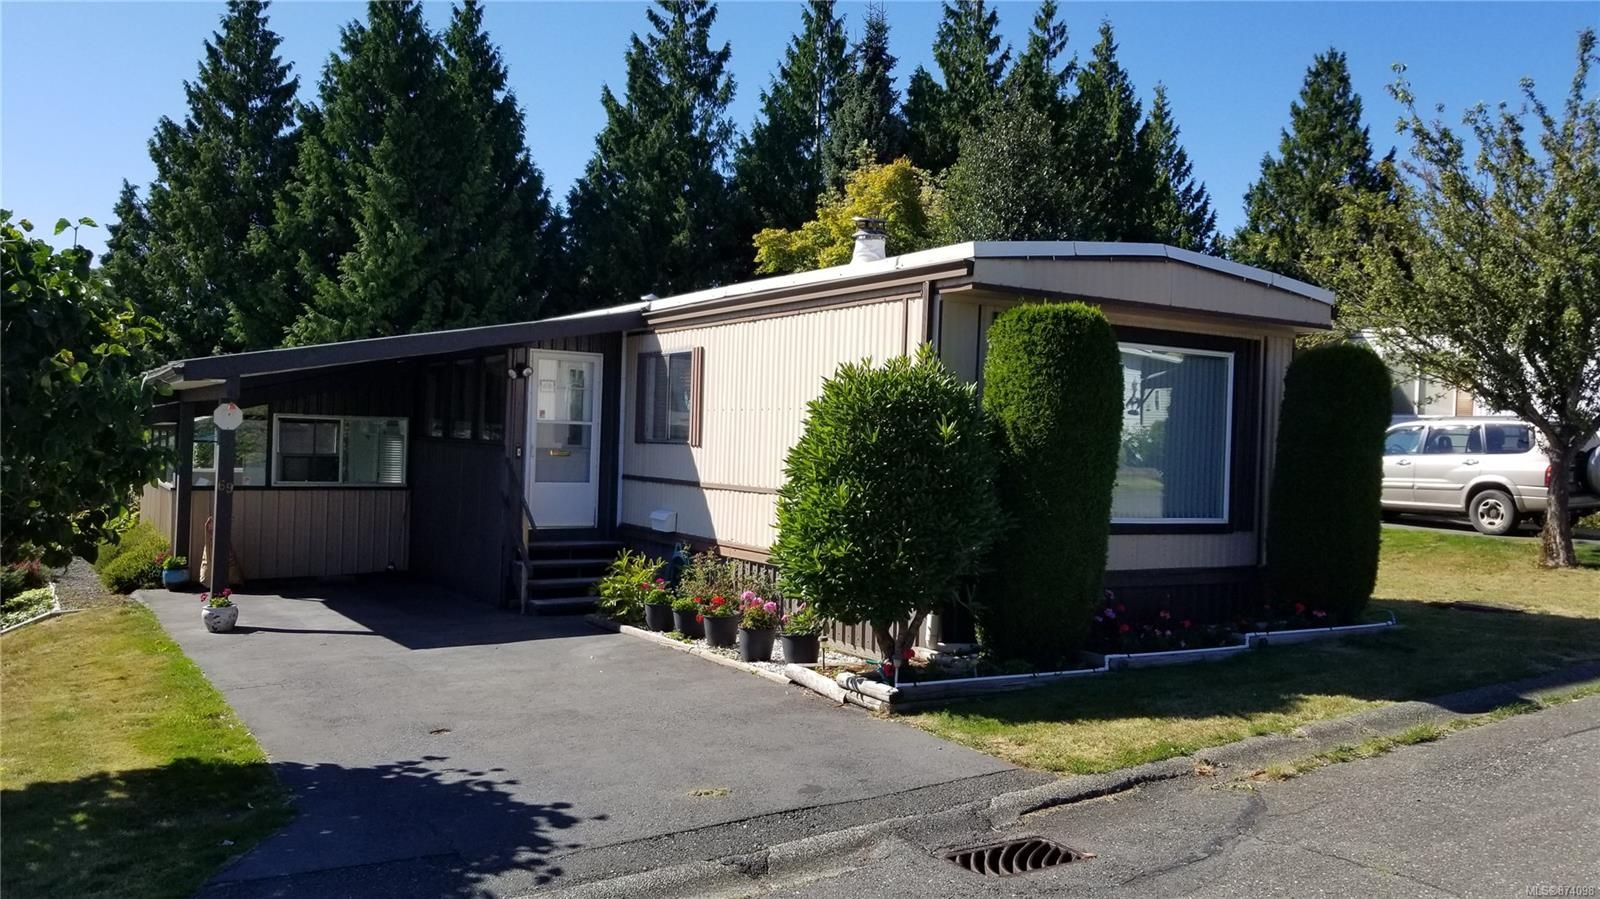 Main Photo: 69 1160 Shellbourne Blvd in Campbell River: CR Campbell River Central Manufactured Home for sale : MLS®# 874098